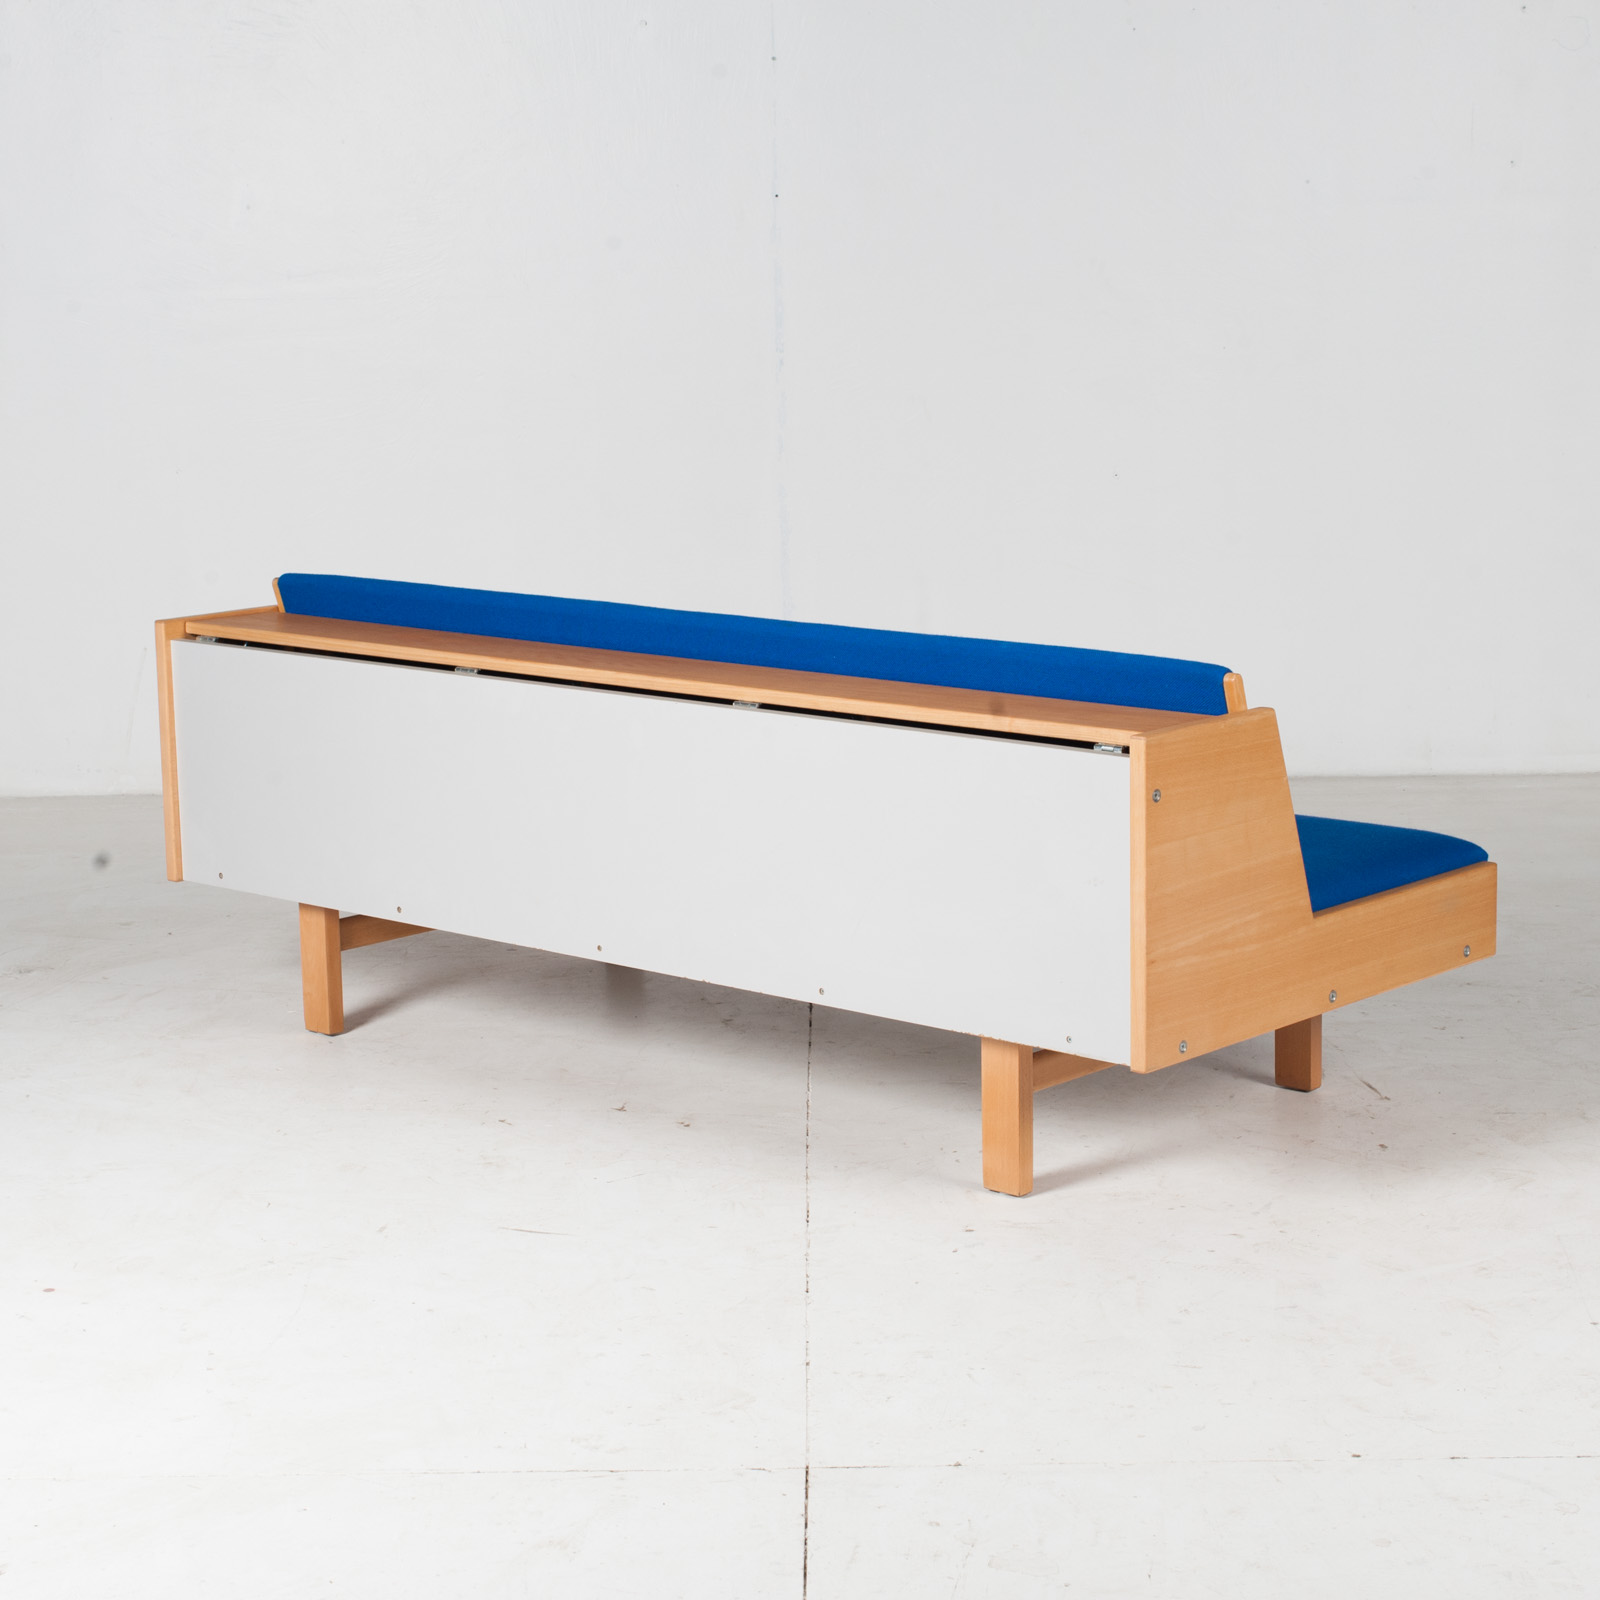 Ge 258 Daybed By Hans J. Wegner In Beech With Original Blue Upholstery For Getama, 1960s, Denmark12